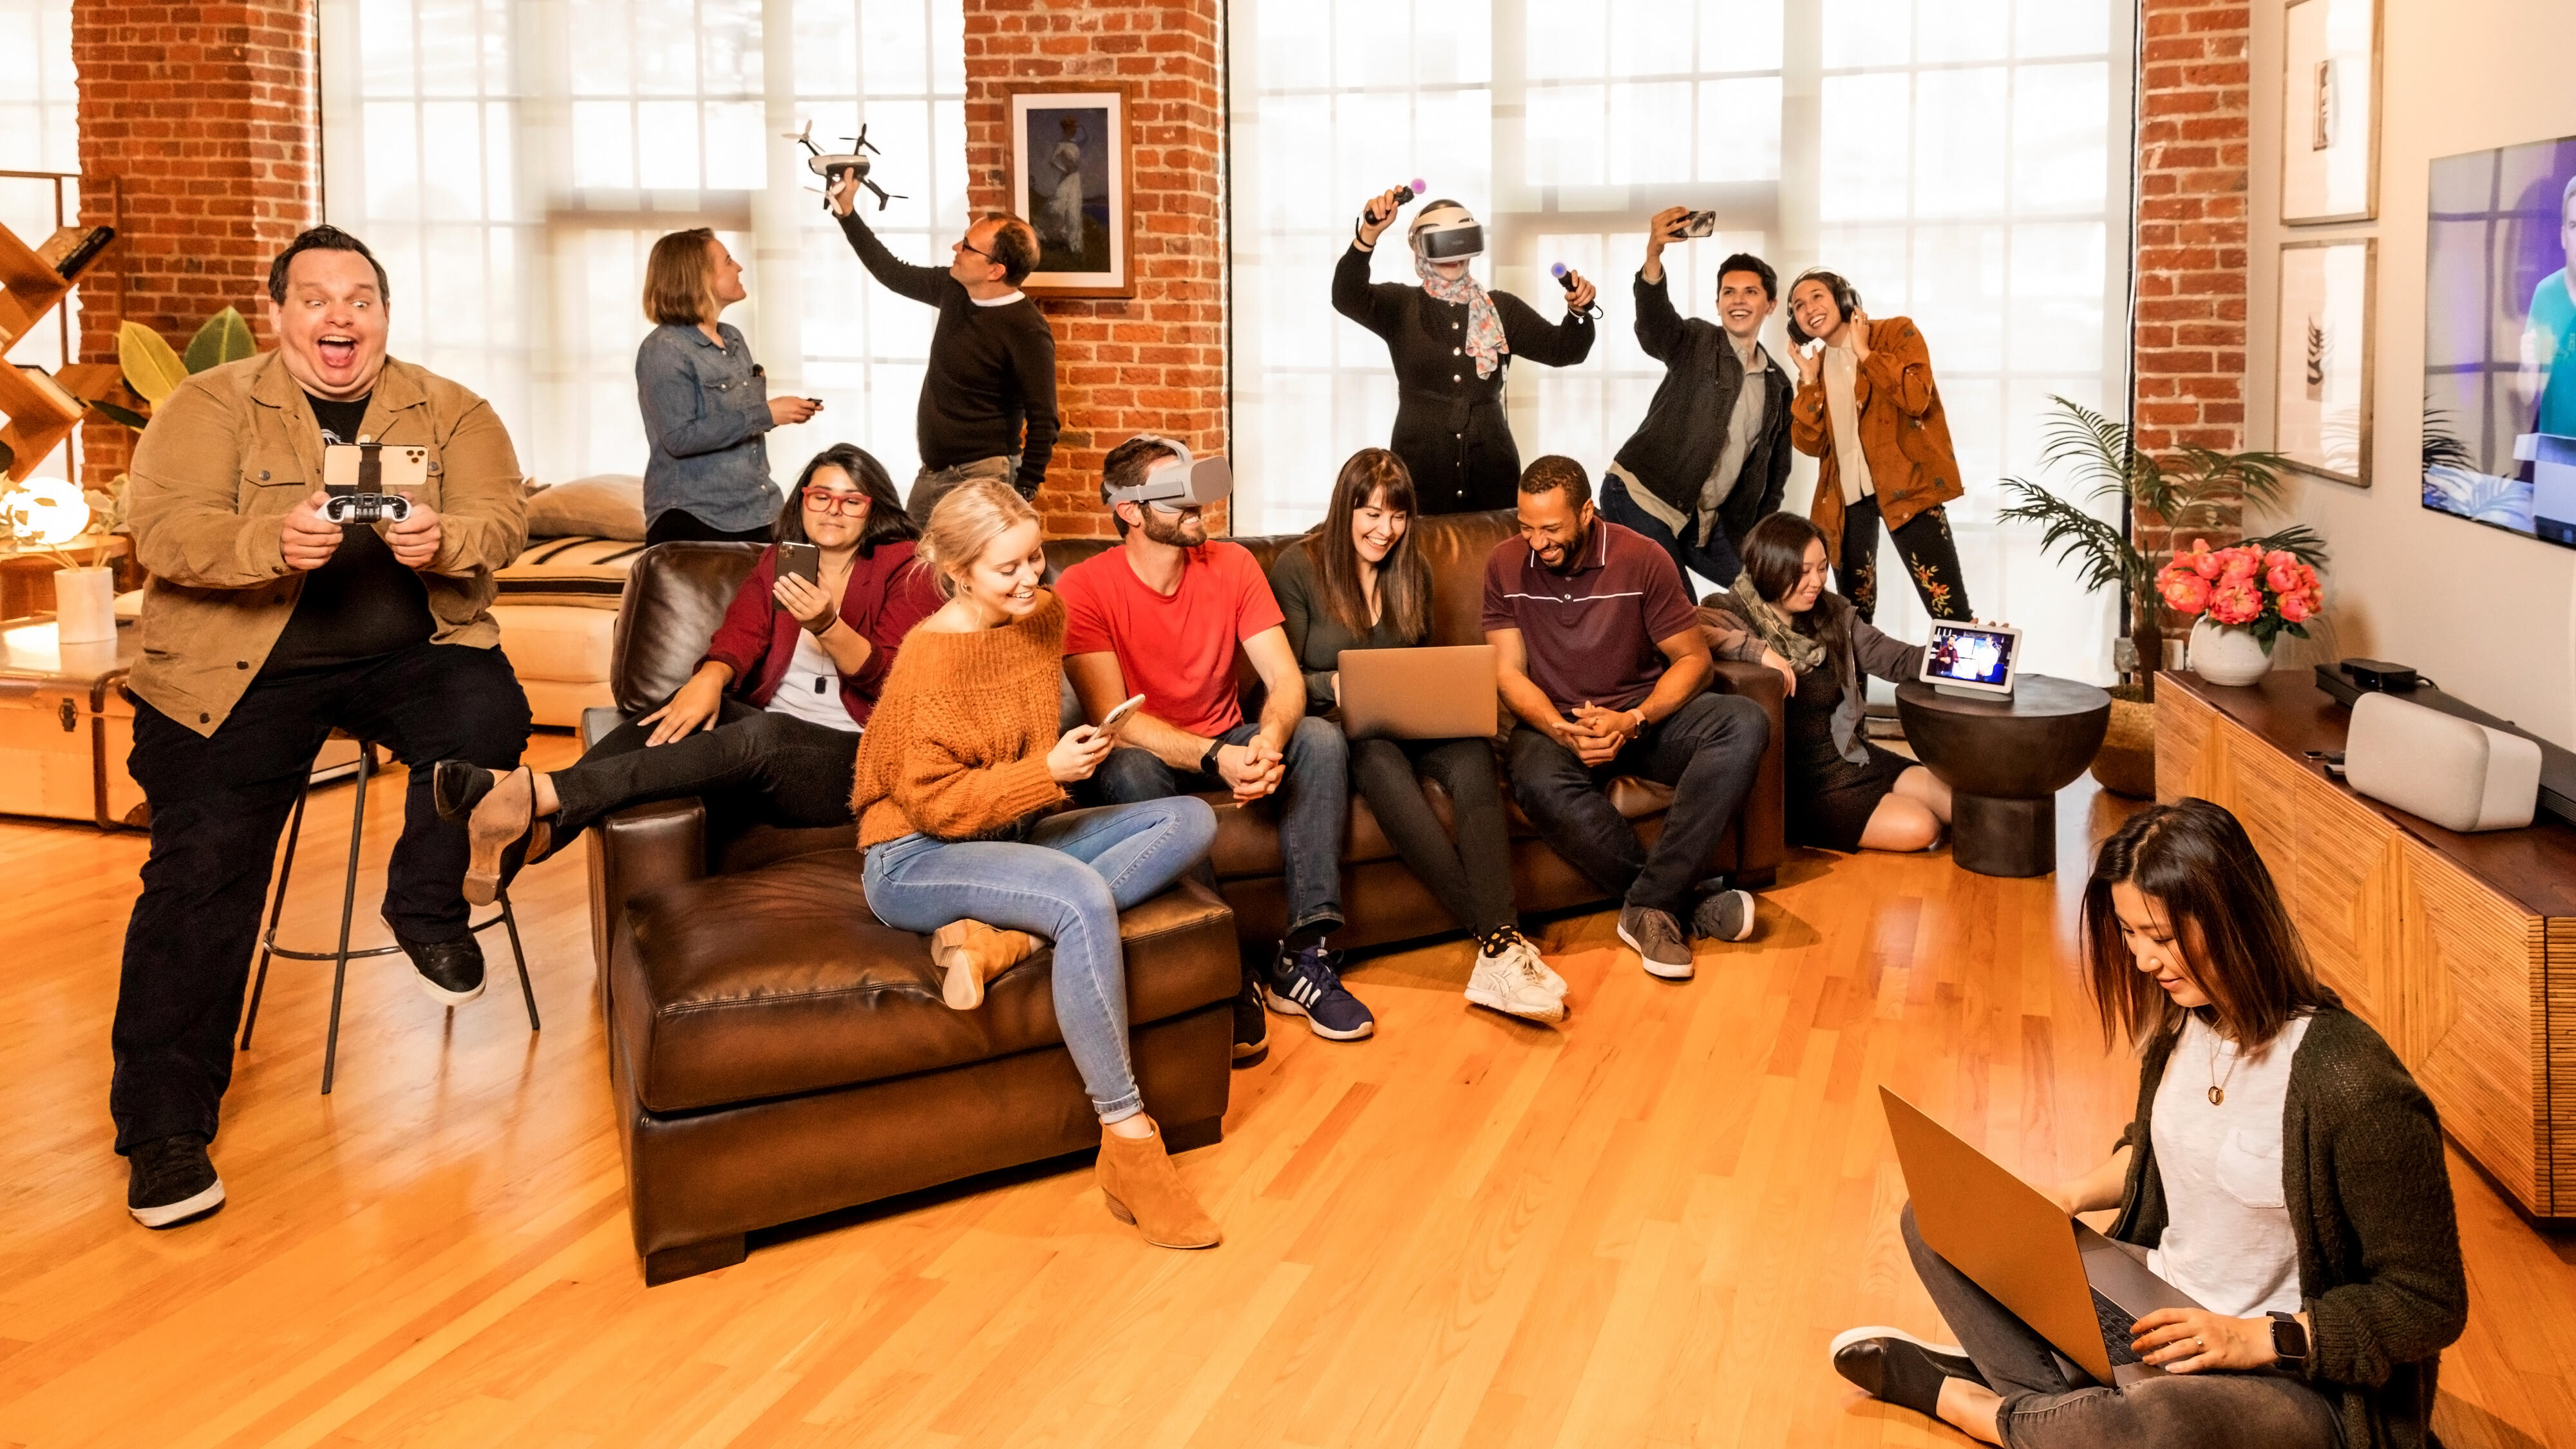 CNET is hiring. You should join us